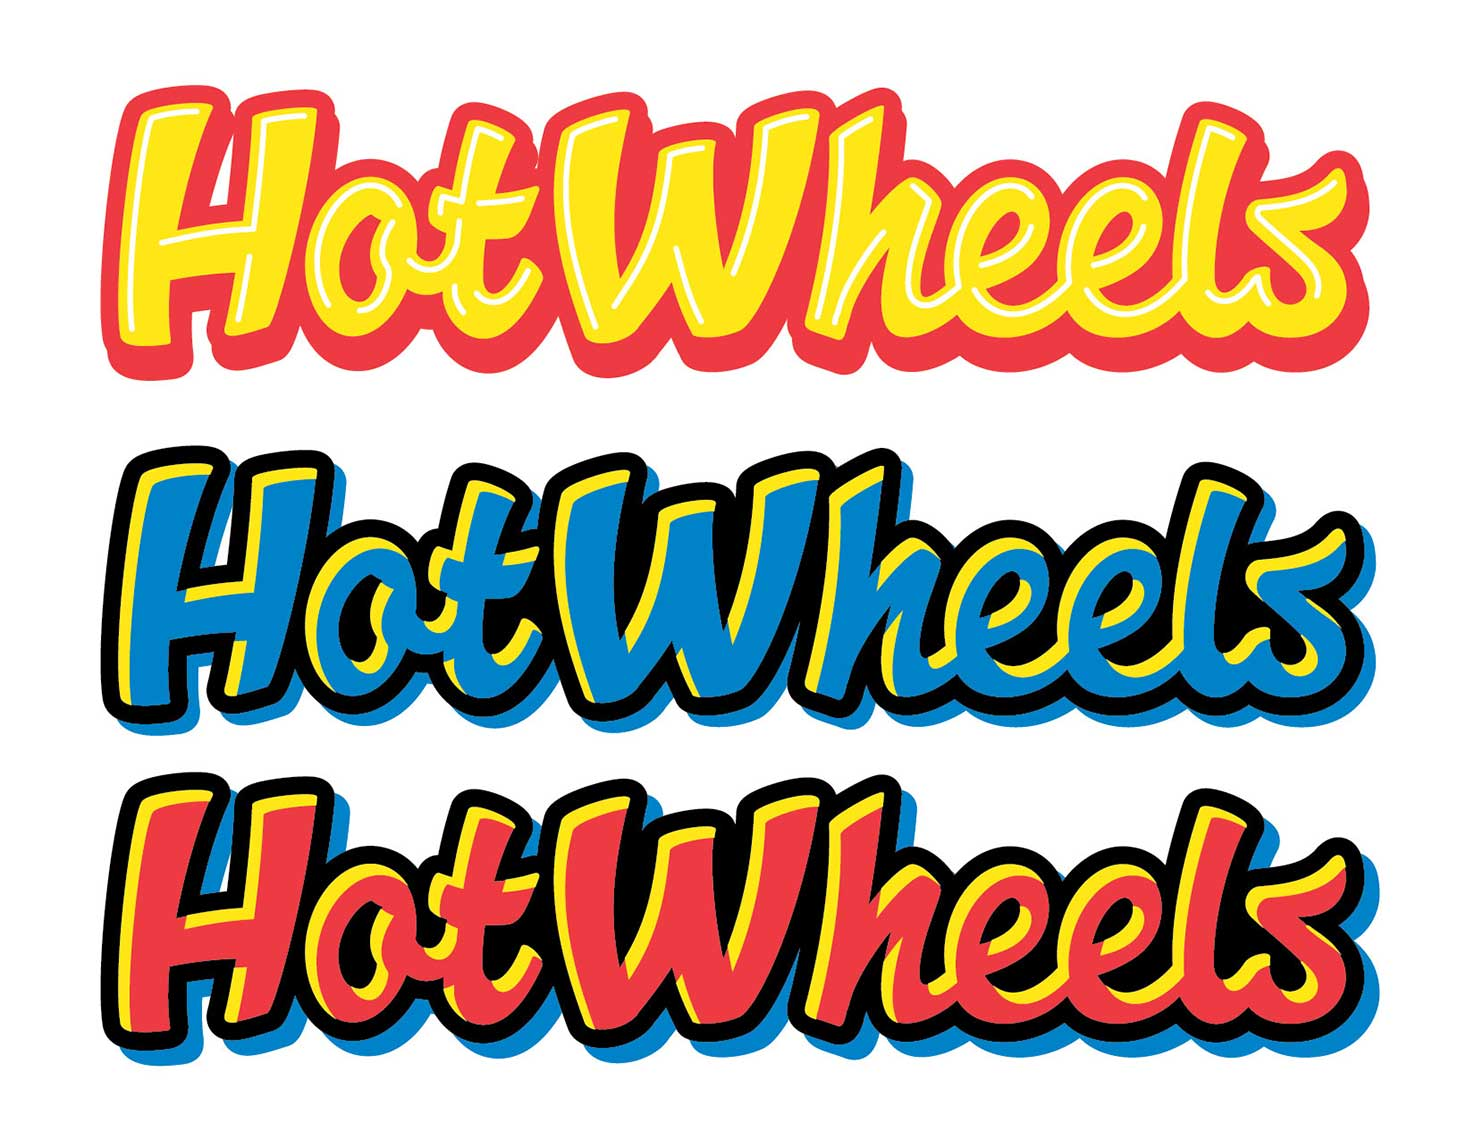 colored script type with highlights-hot wheels logo development